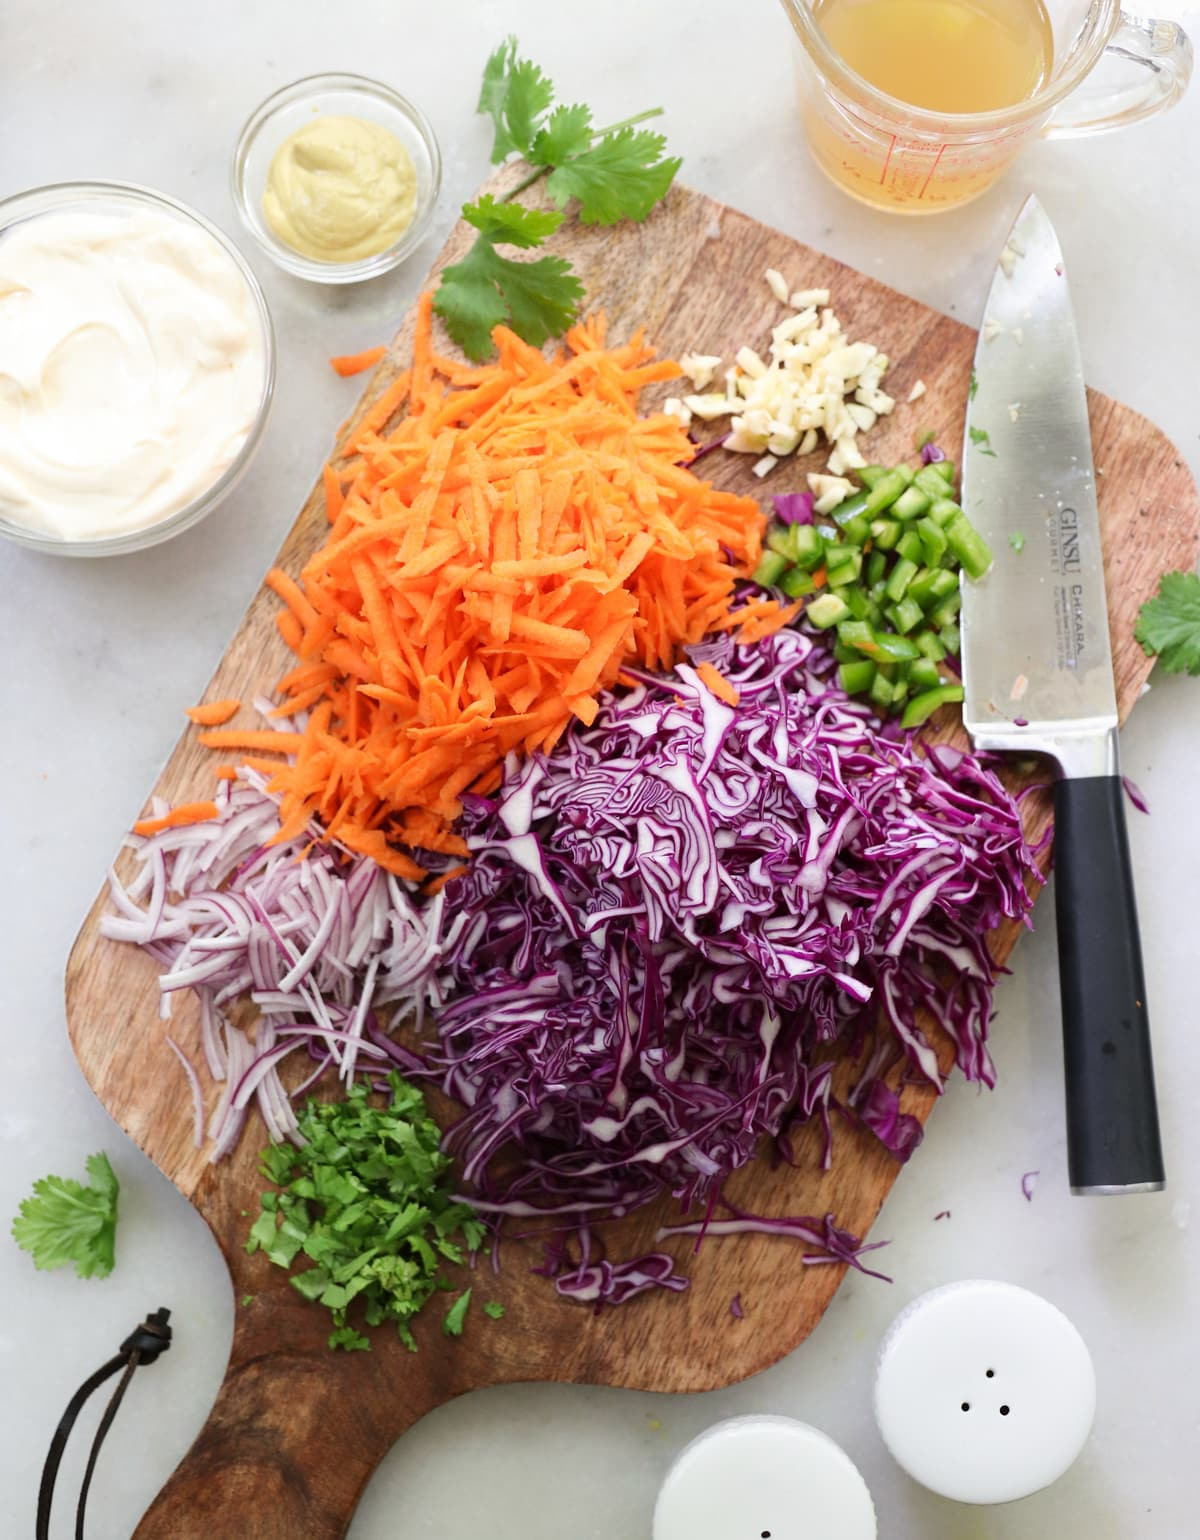 A large wooden cutting board topped with shredded cabbage, carrots, red onion, and minced cilantro, jalapeno, and garlic.